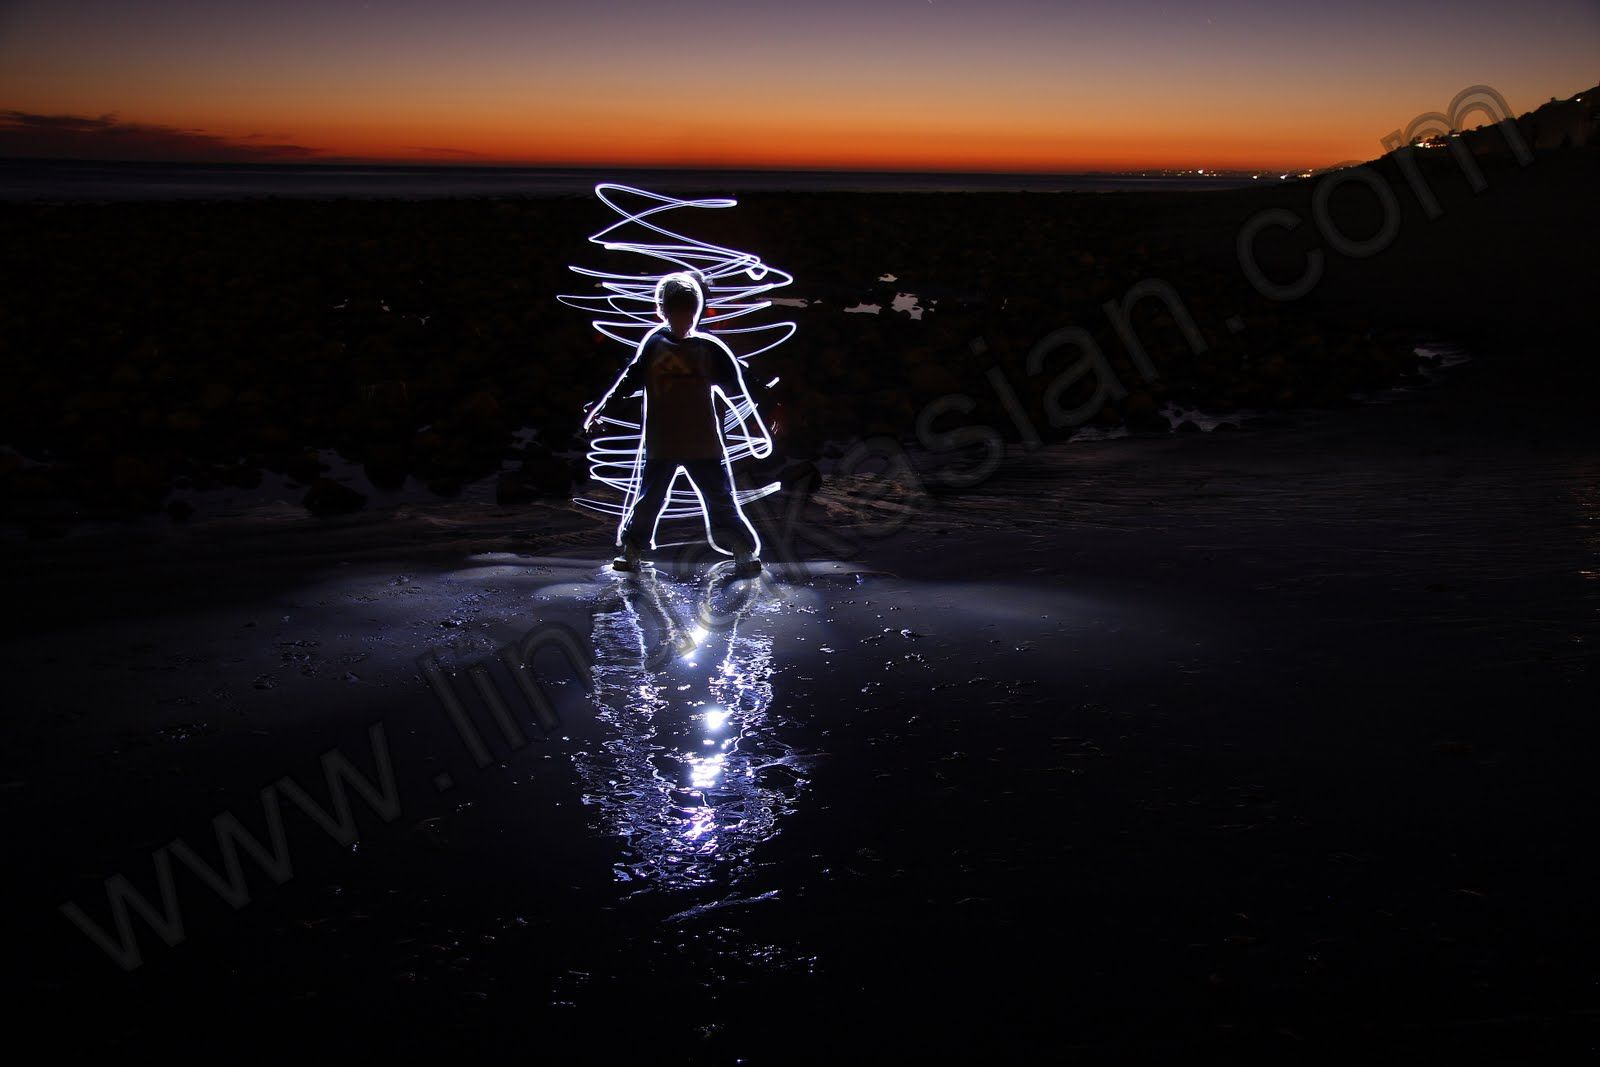 007 Pin by Sunny SK on Light photography Light painting